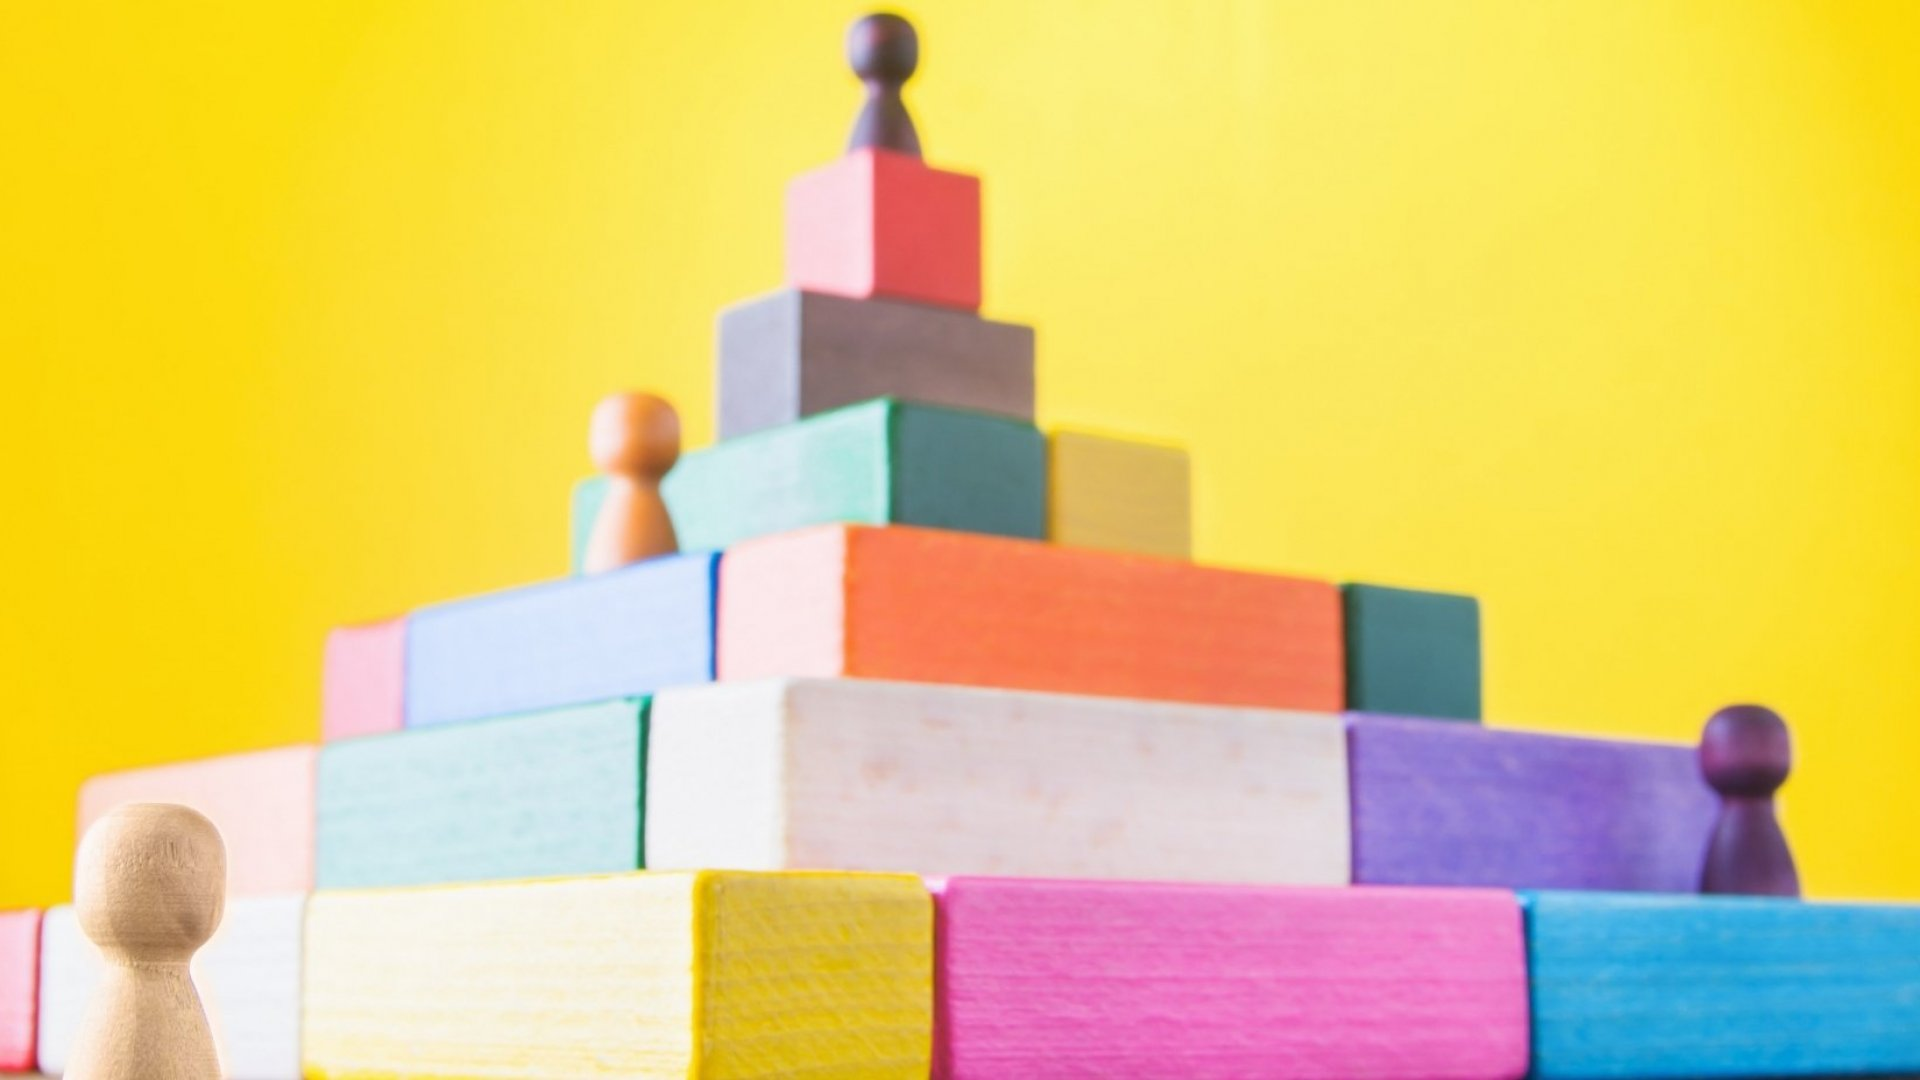 6 Ways Corporate Hierarchy Is Destroying Your Business